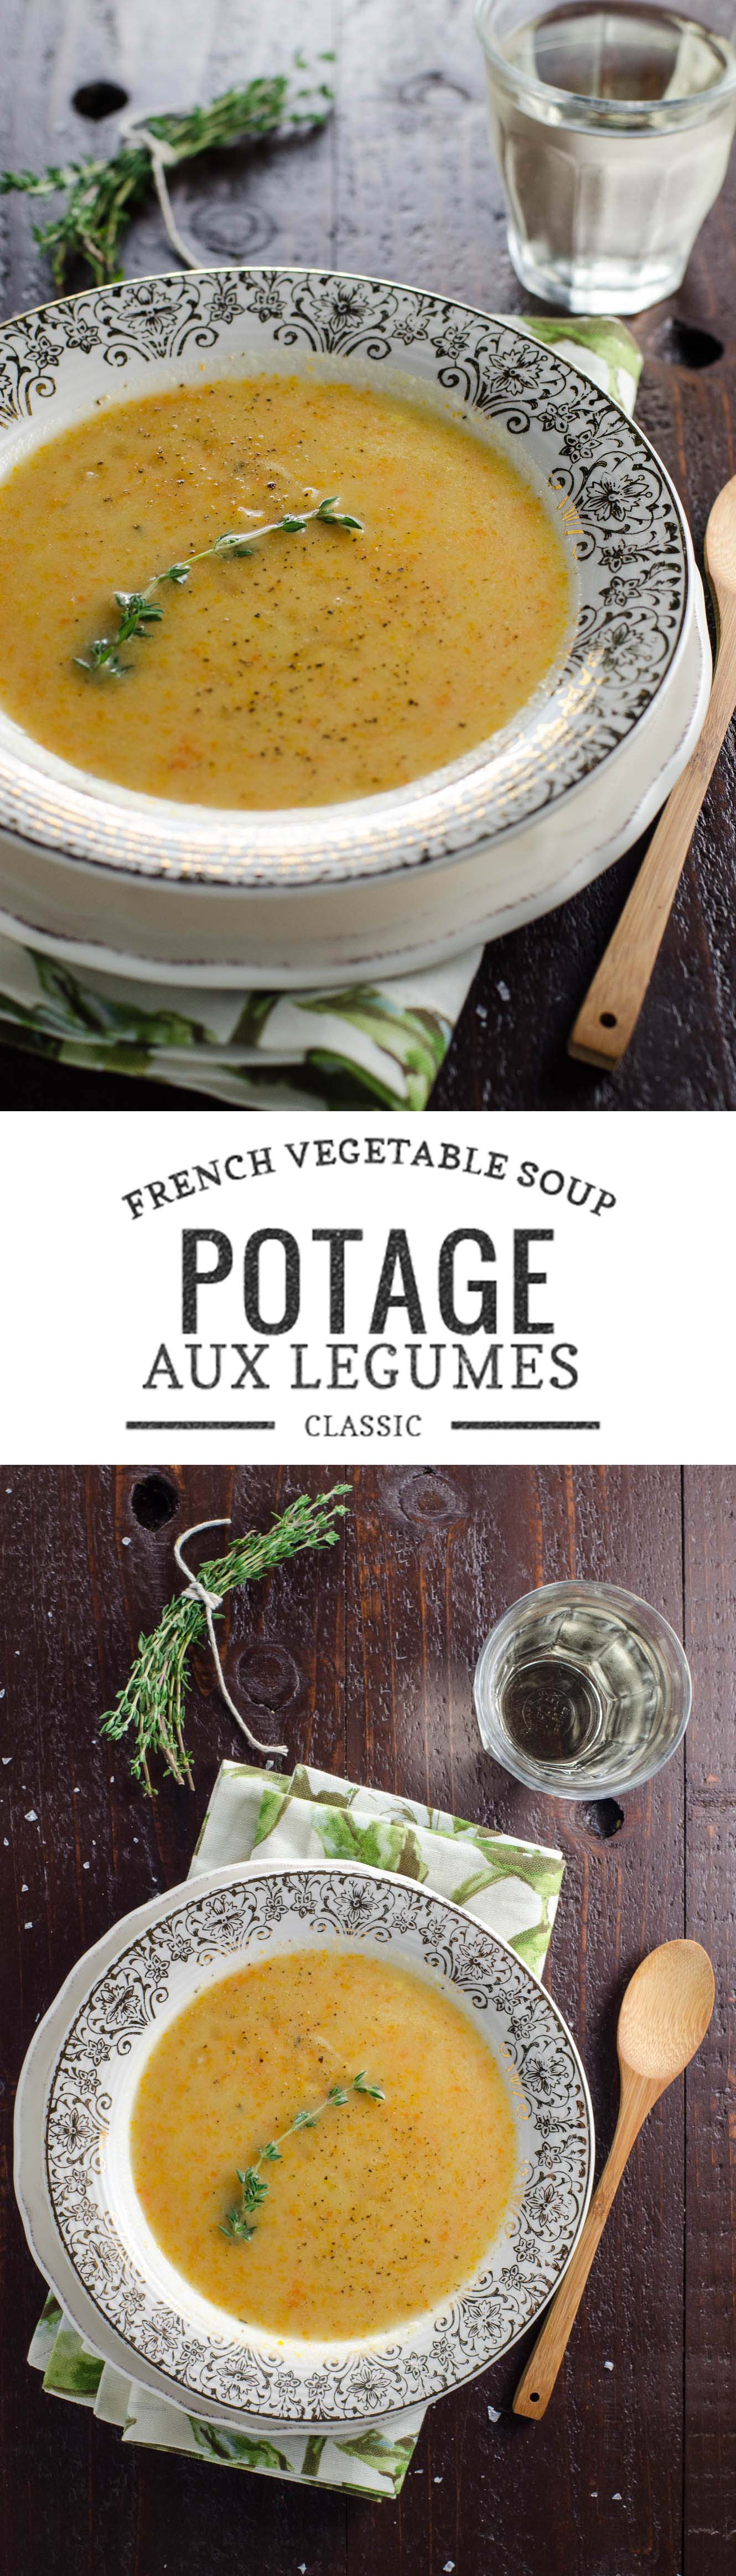 Potage aux Legumes is the classic French vegetable soup with a cozy, rustic vibe. So easy, so warming, so good.